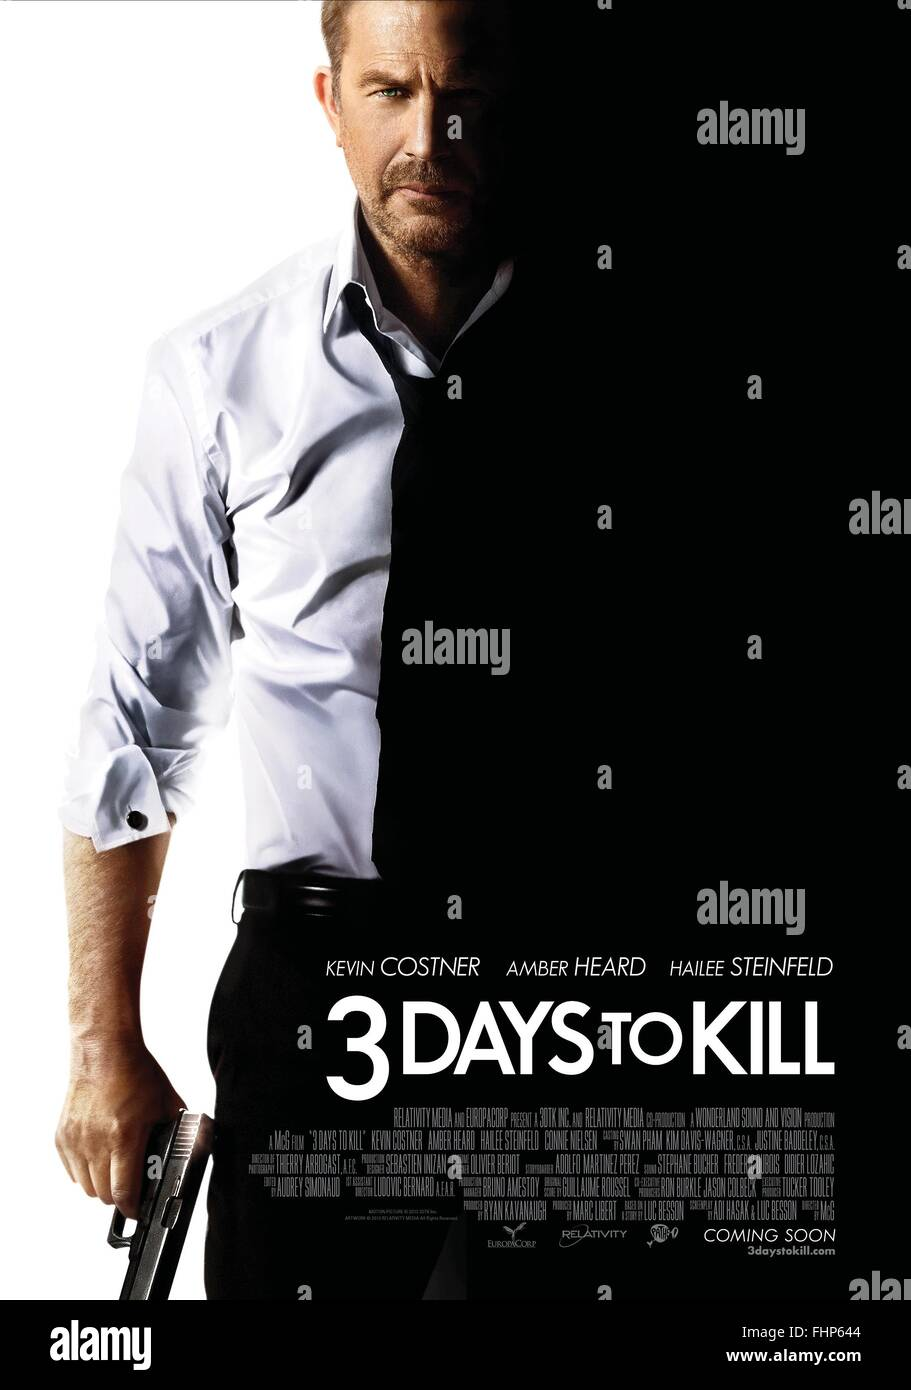 kevin costner movie poster 3 days to kill three days to